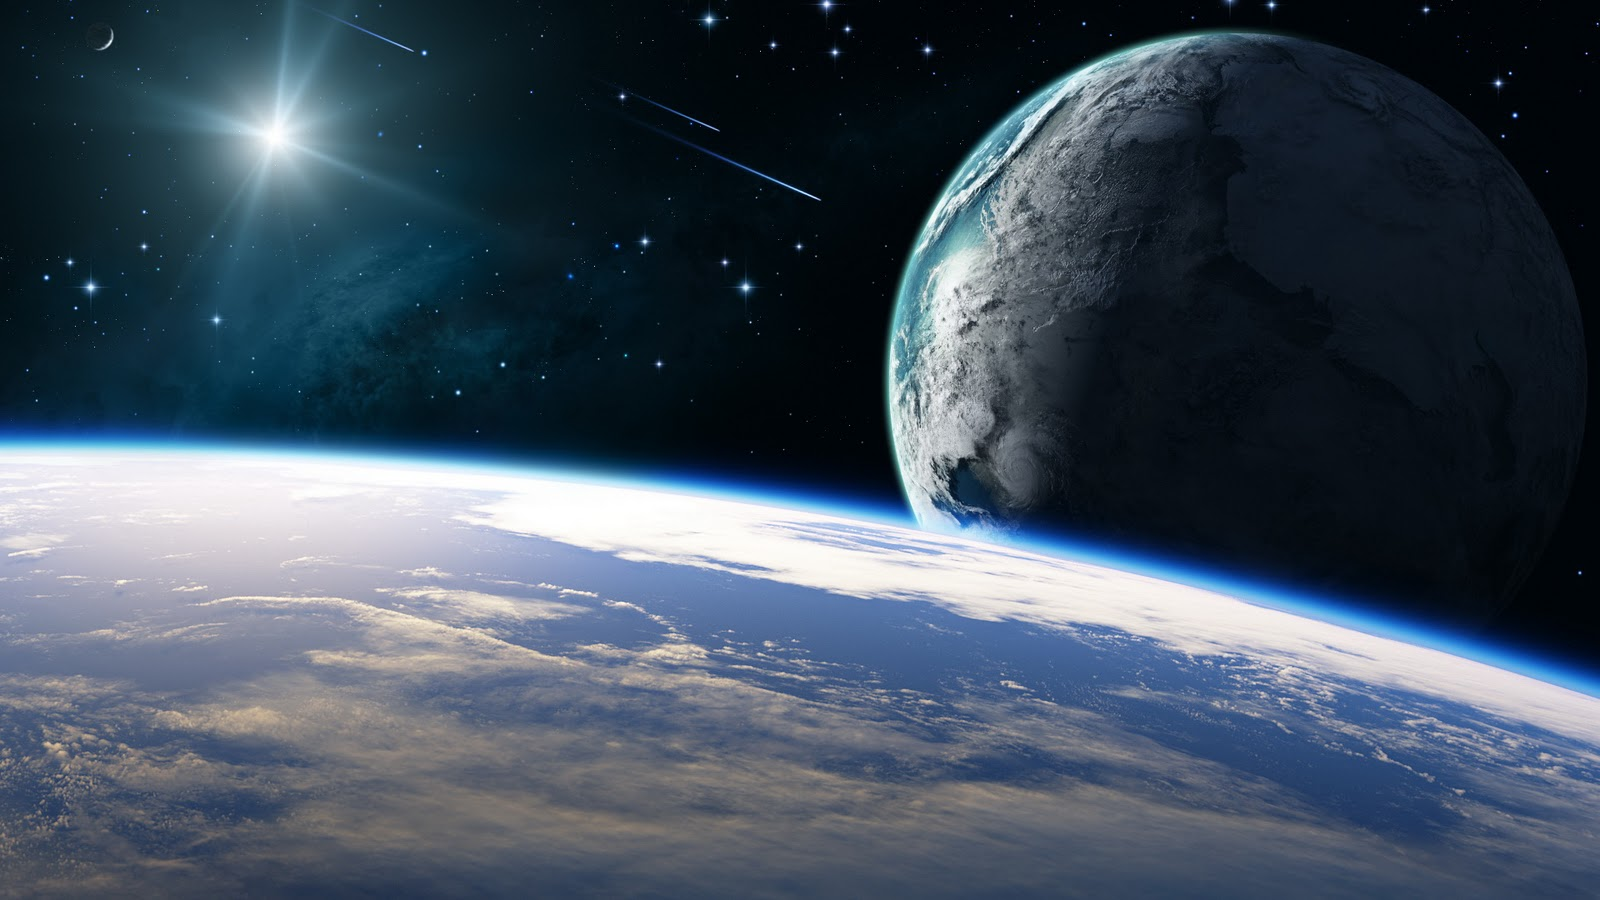 Space HD Wallpapers Free Download